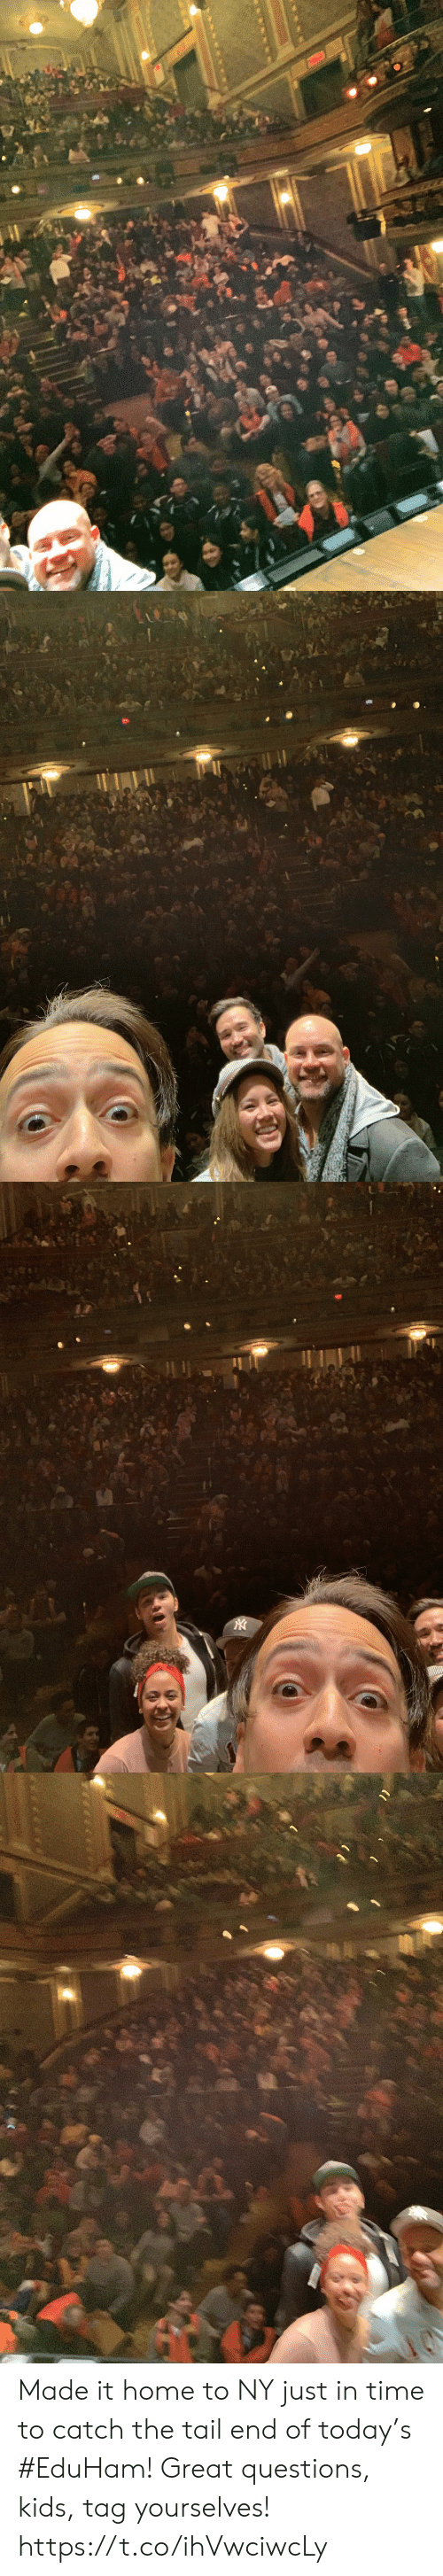 Memes, Home, and Kids: Made it home to NY just in time to catch the tail end of today's #EduHam! Great questions, kids, tag yourselves! https://t.co/ihVwciwcLy